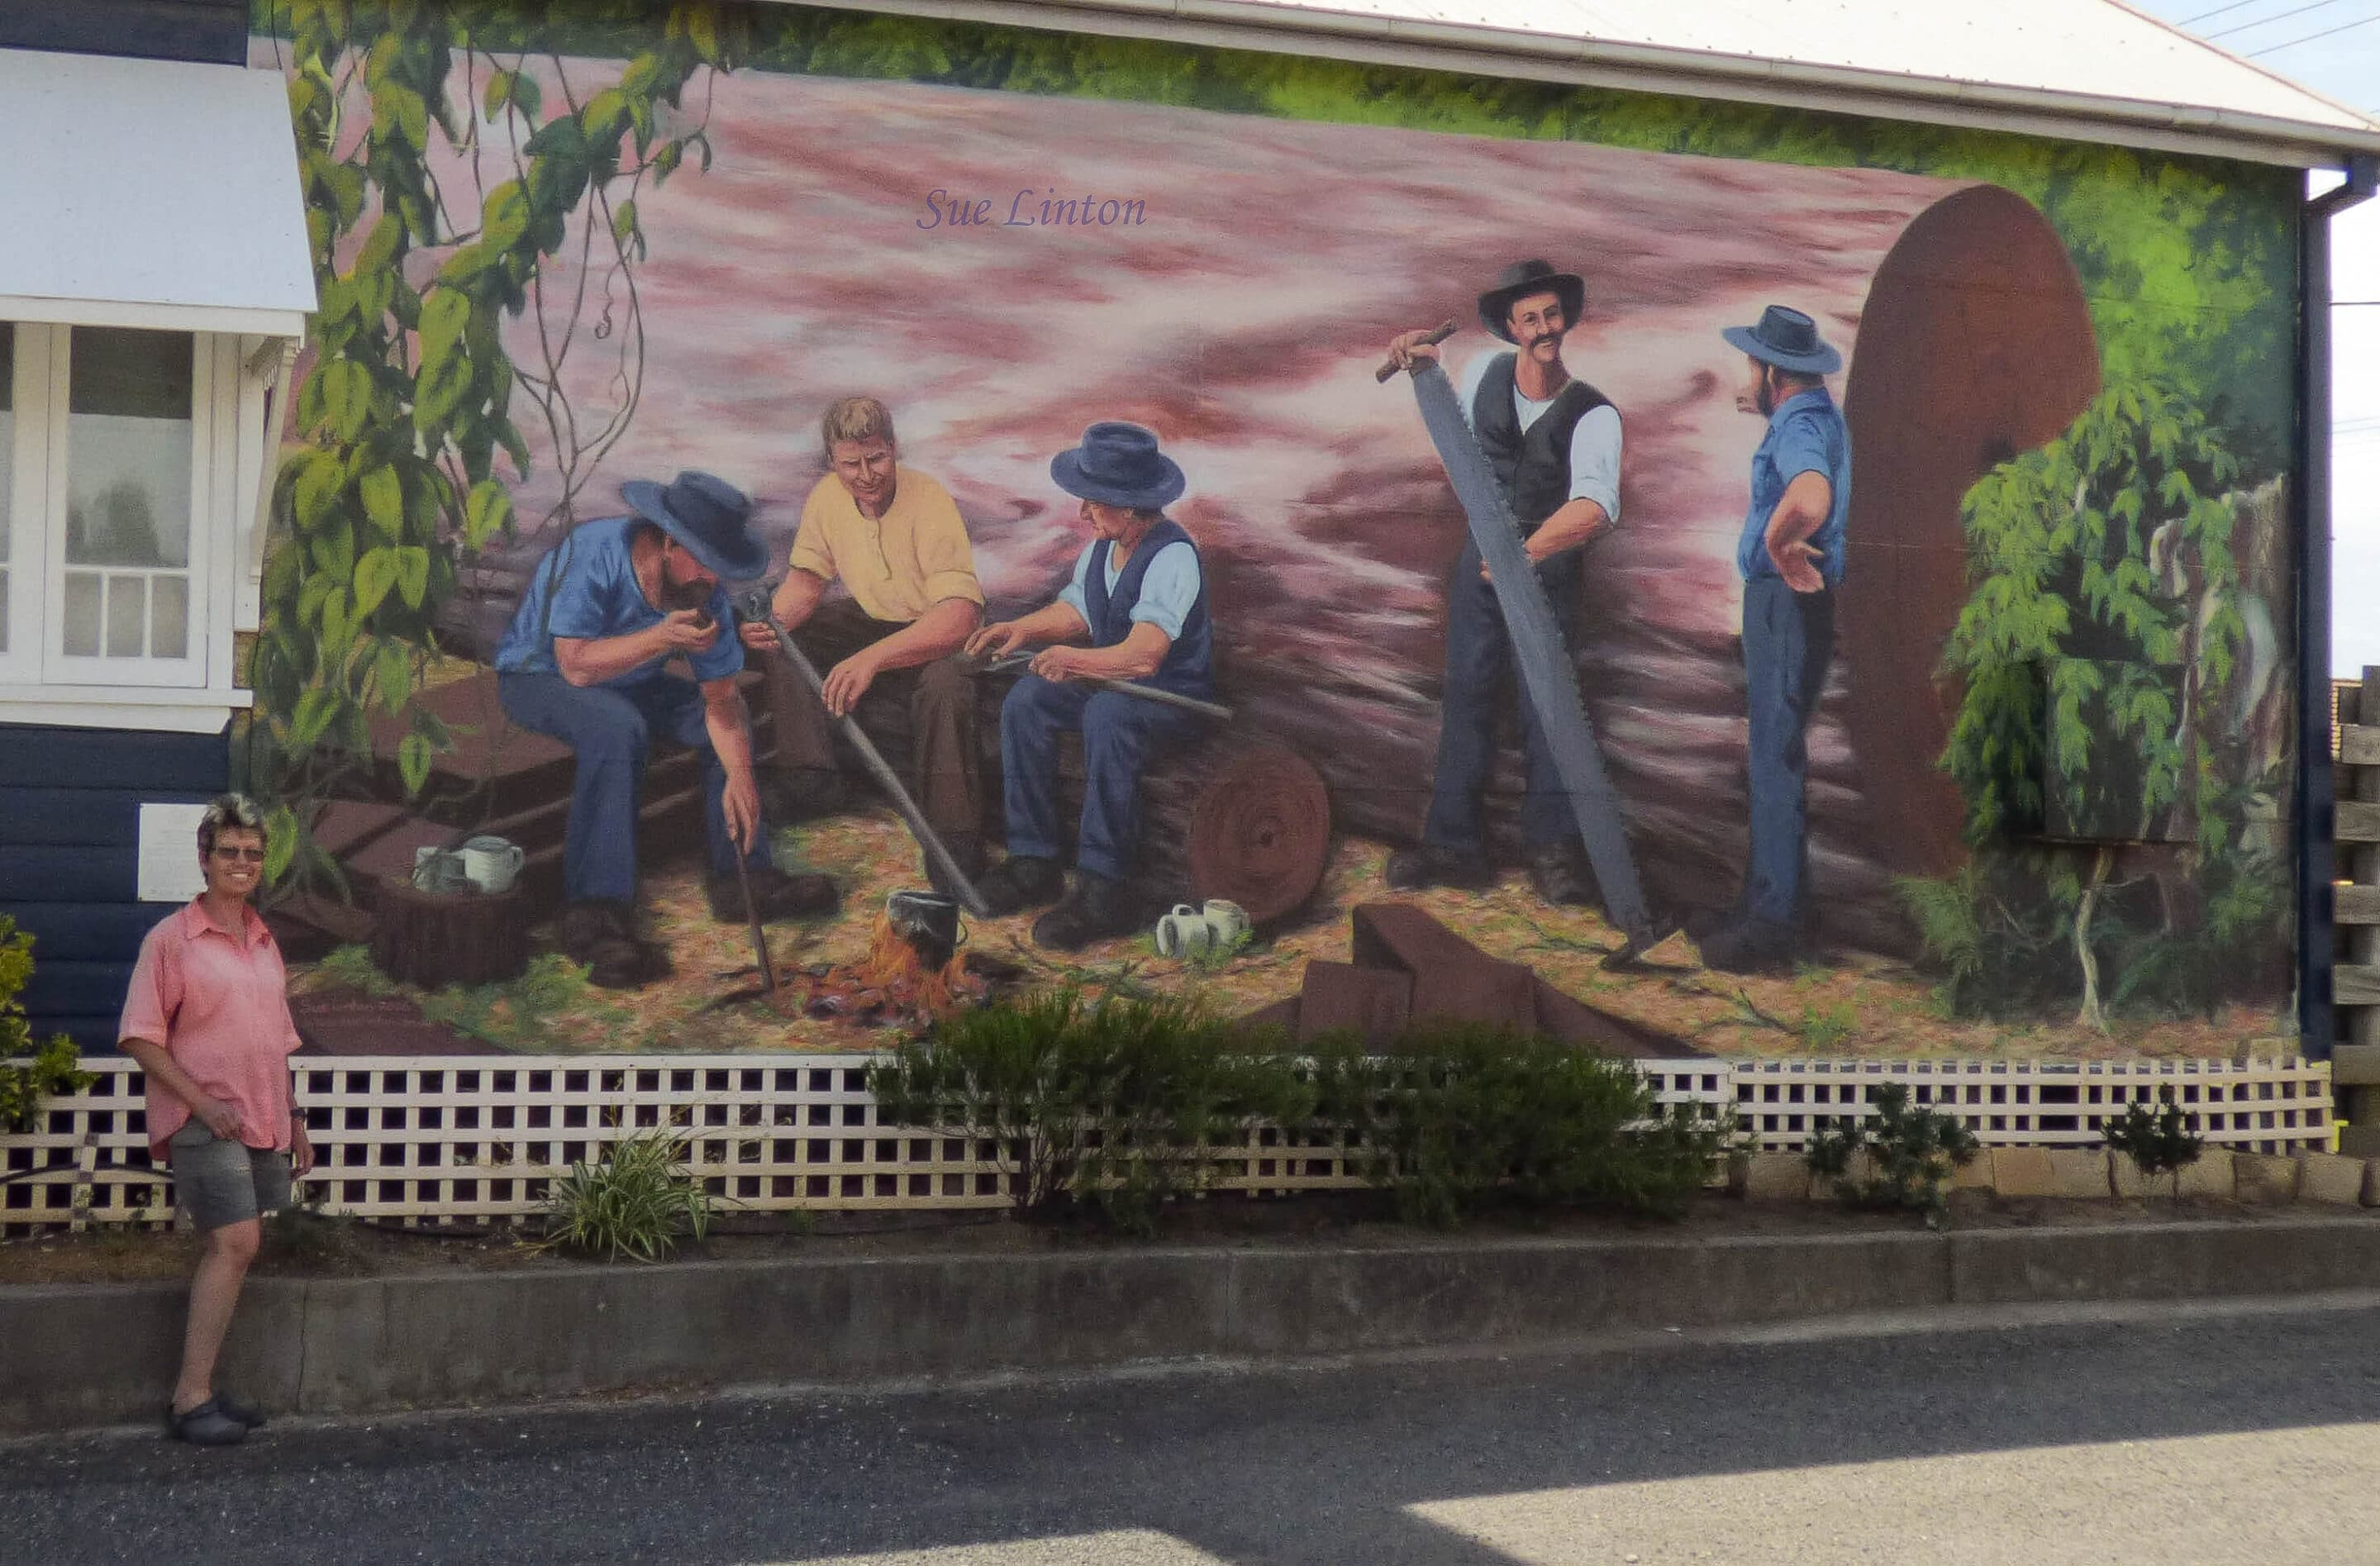 The mural with me to show the size.